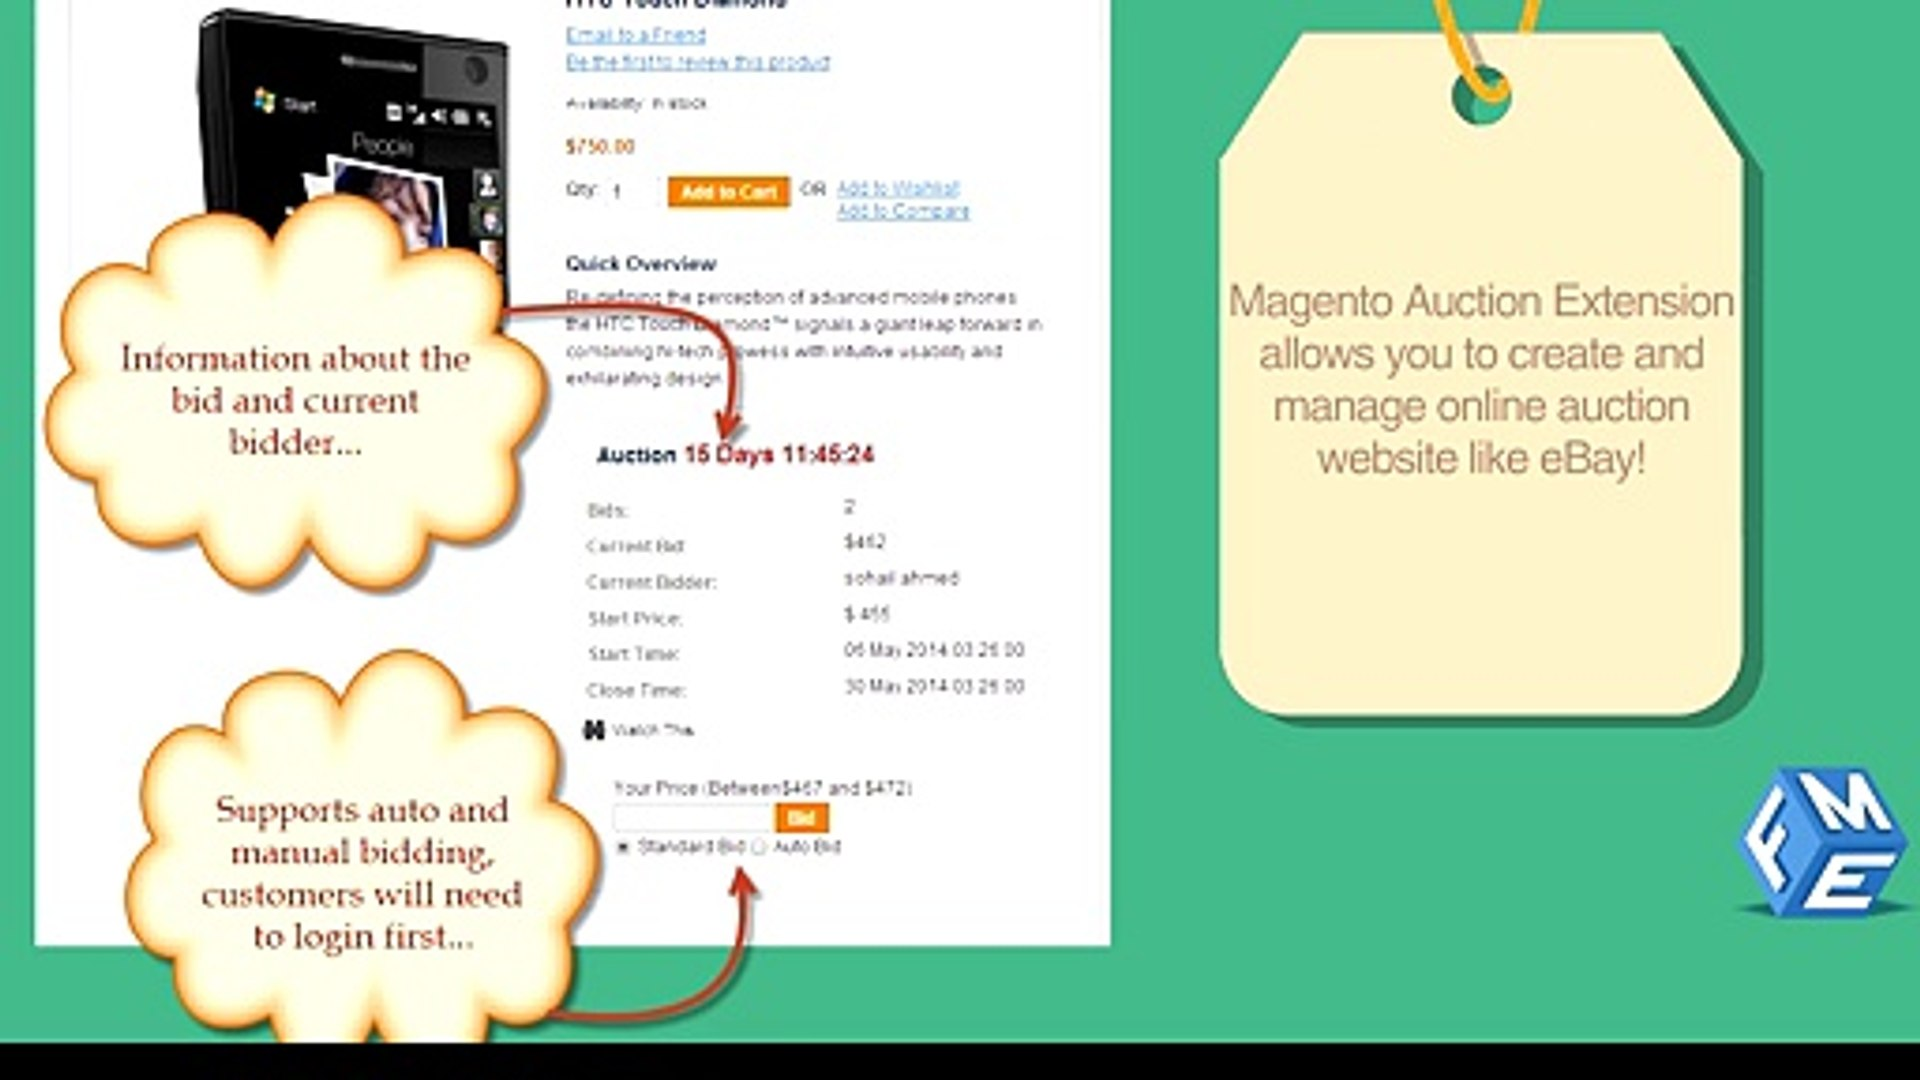 Magento Auction Extension Build Your Own Auction Website Video Dailymotion